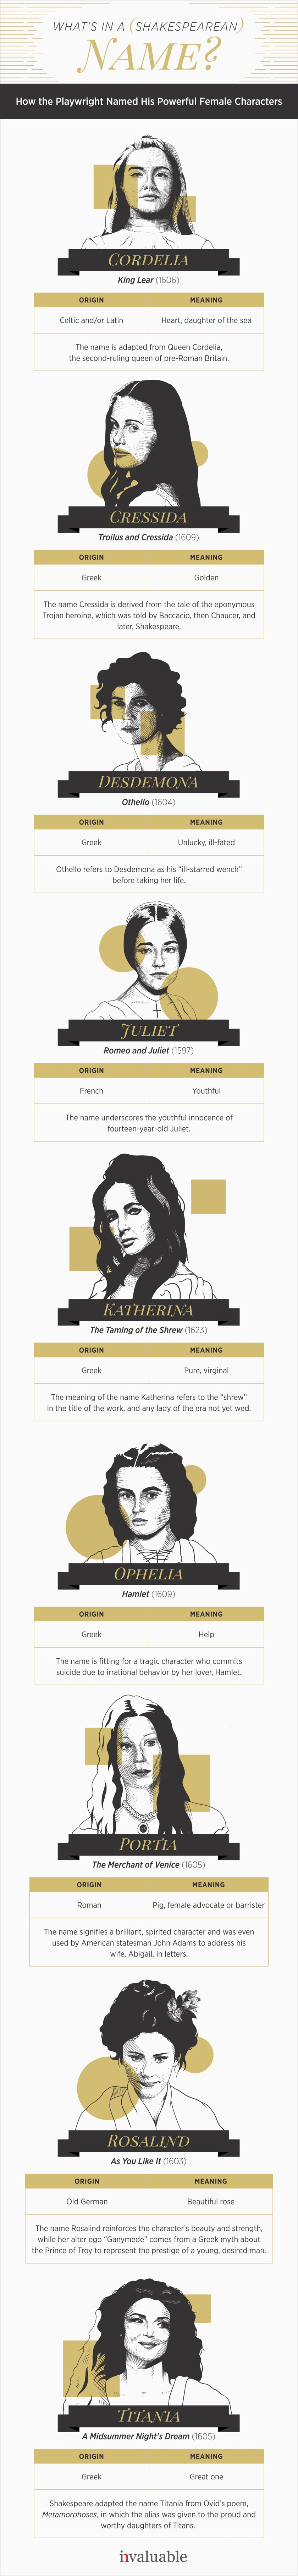 Shakespeare's famous female character's names - infographic